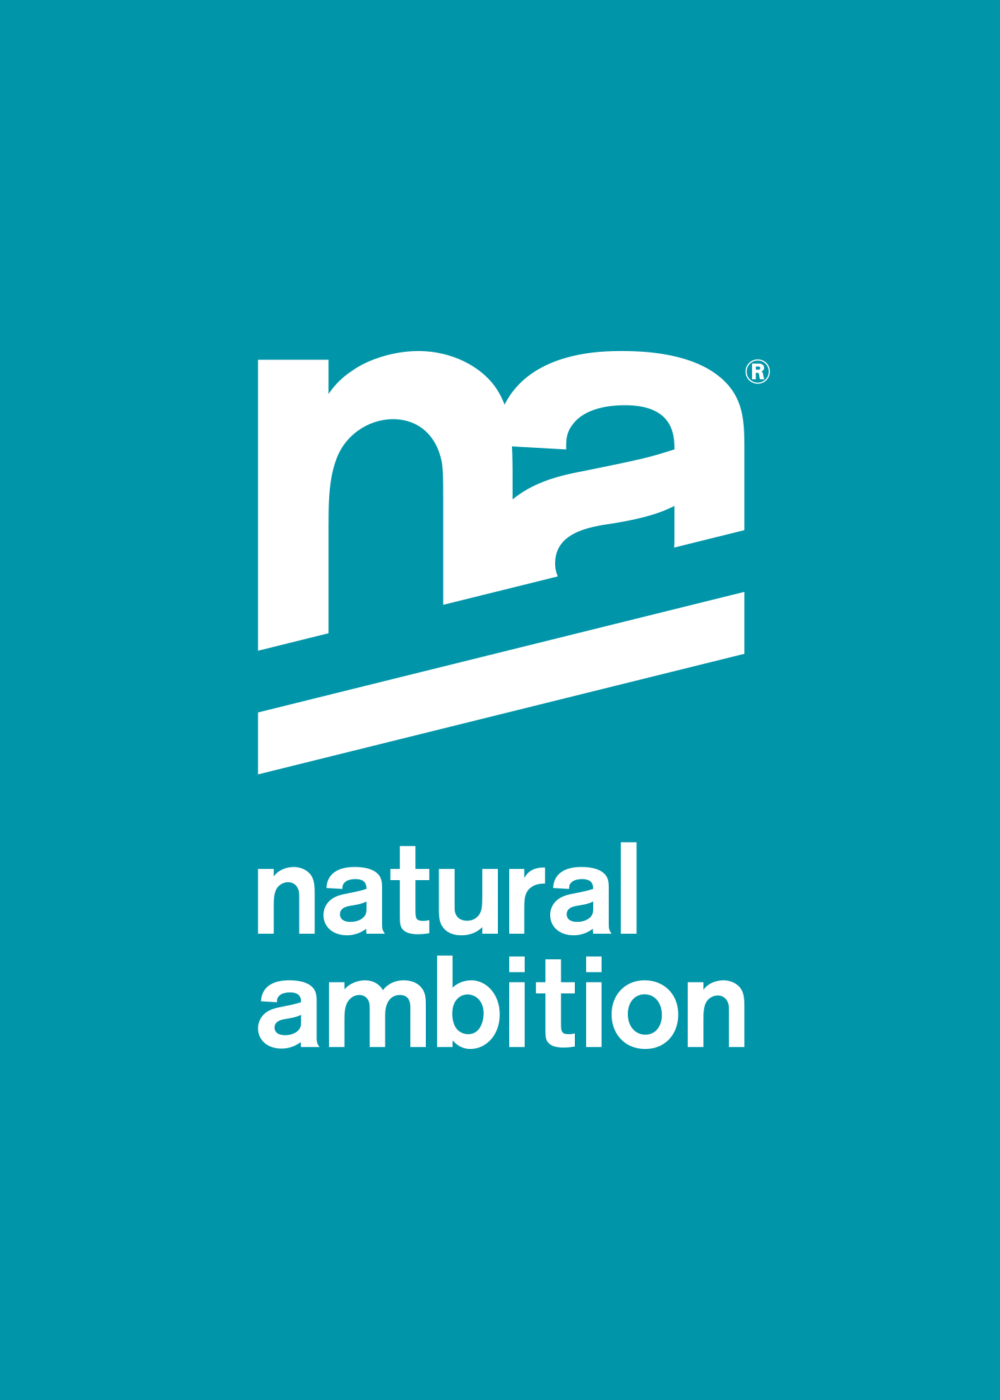 Natural Ambition - Branding, Packaging & Website Design In Shropshire